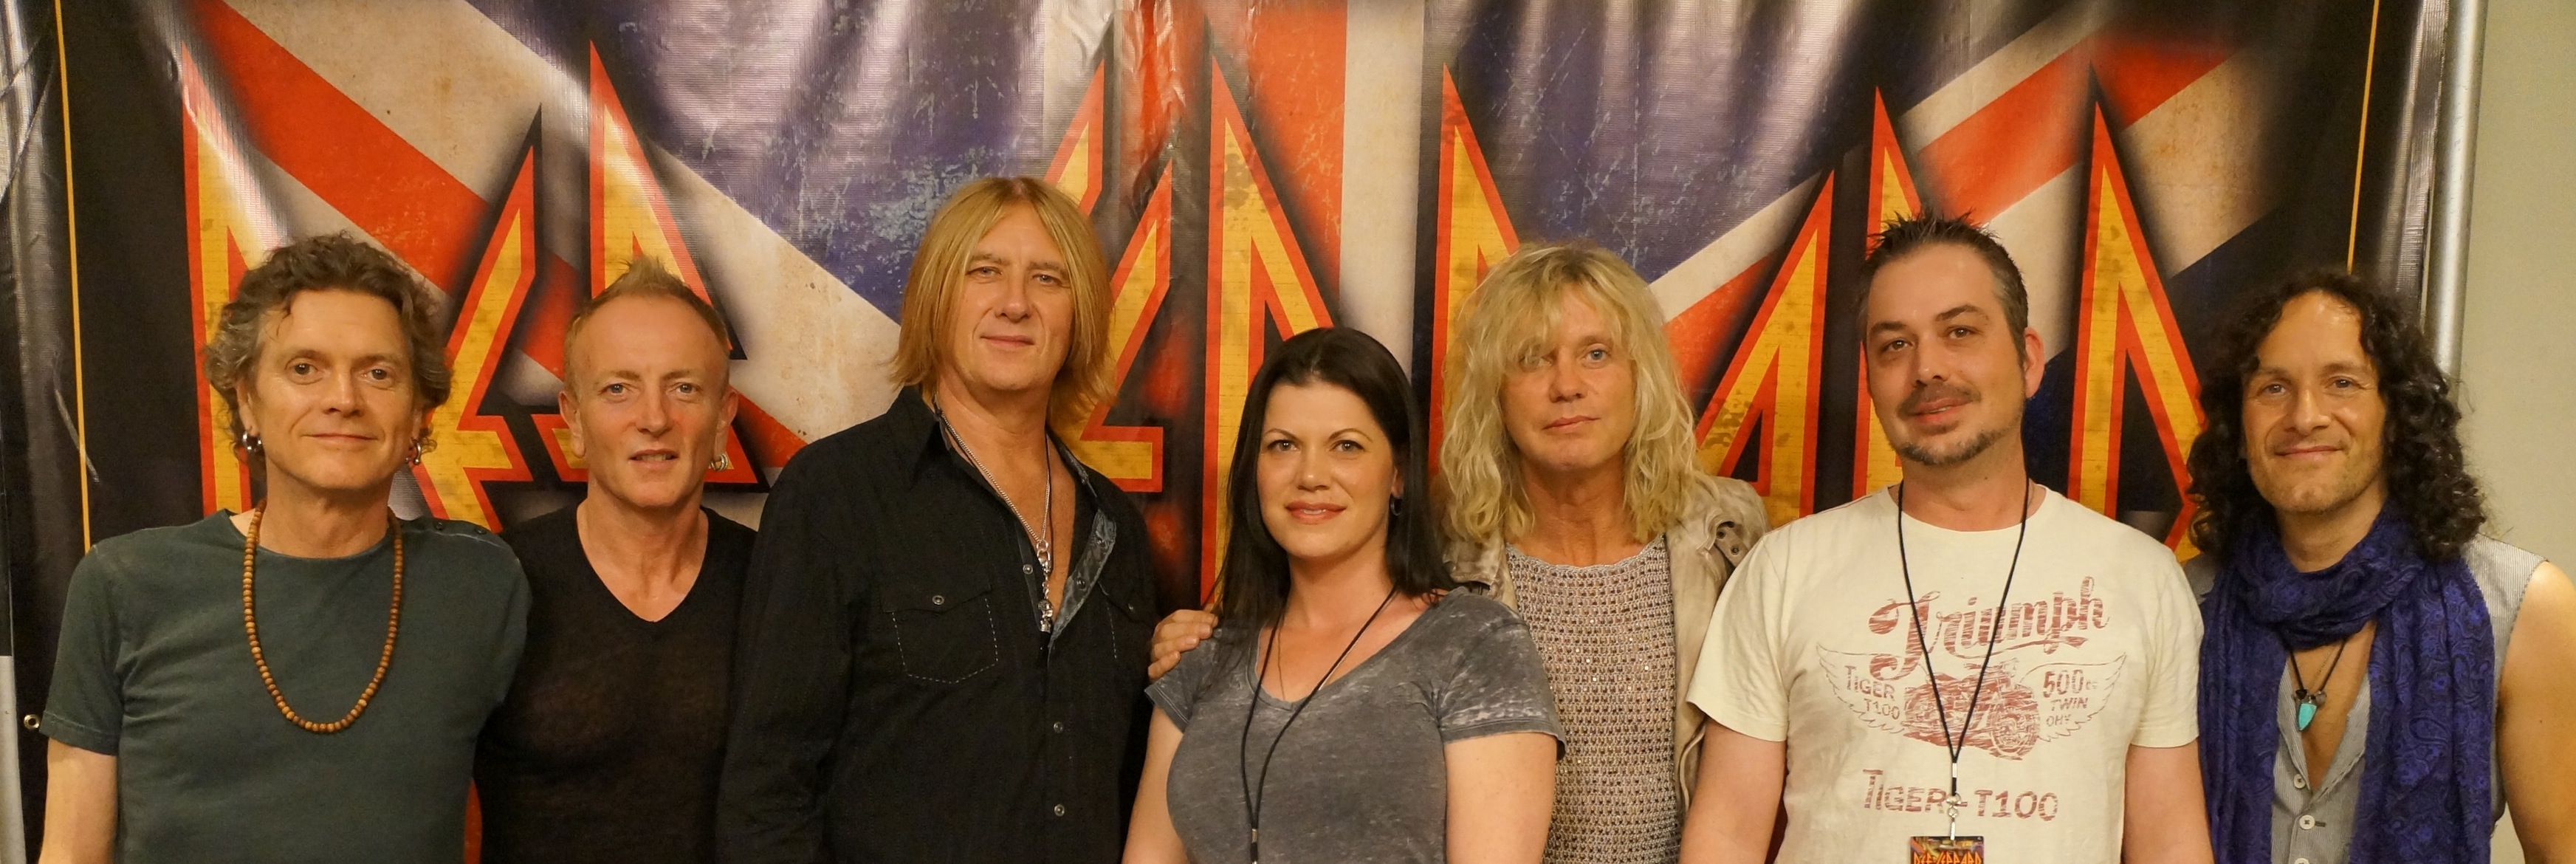 Def Leppard Wded Flatbird Viva Hysteria 2012 The Joint At The